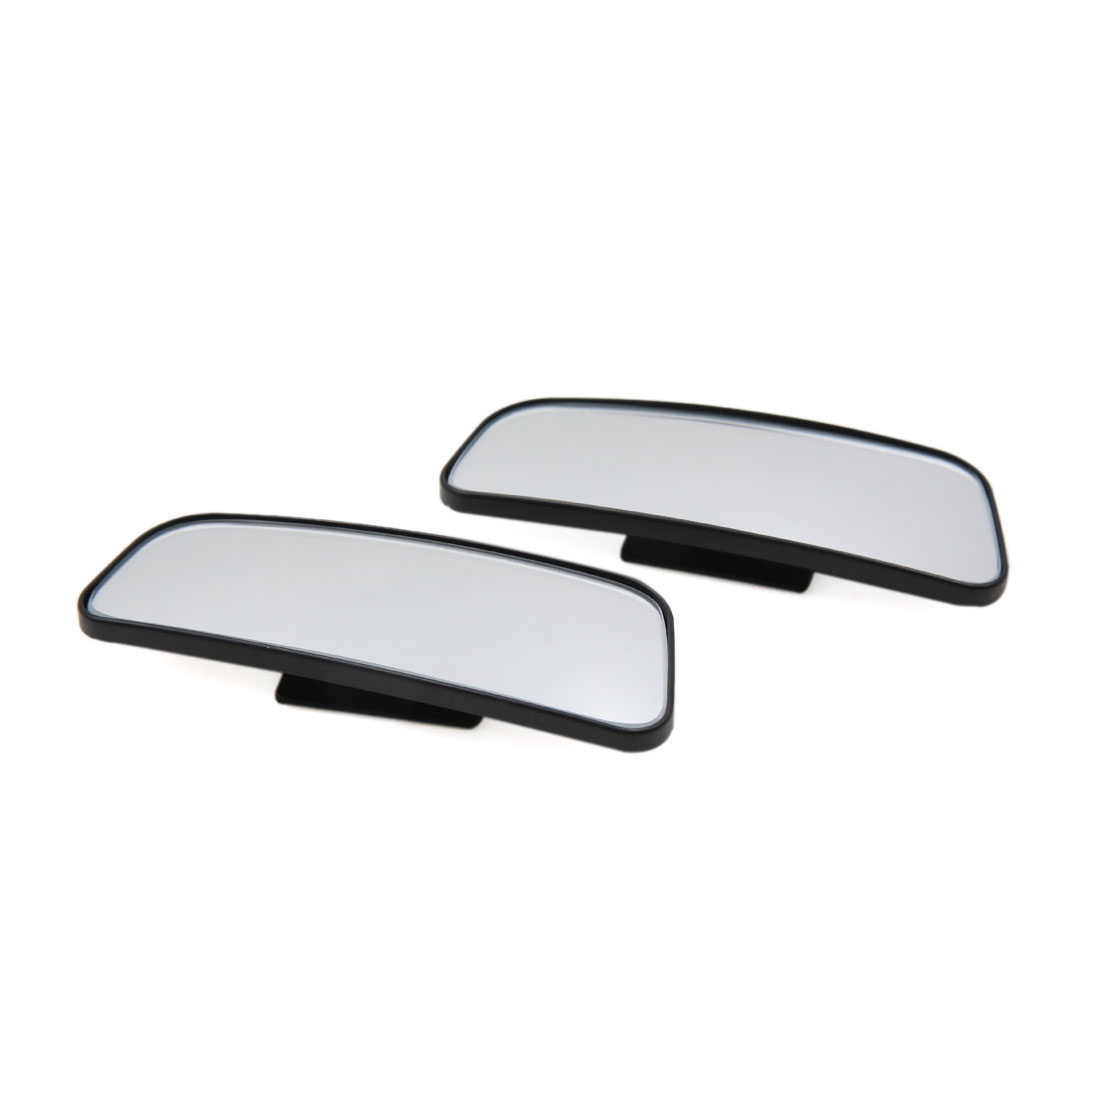 2pcs Rectangular Stick-on Wide Angle Rear View Blind Spot Mirror for Car